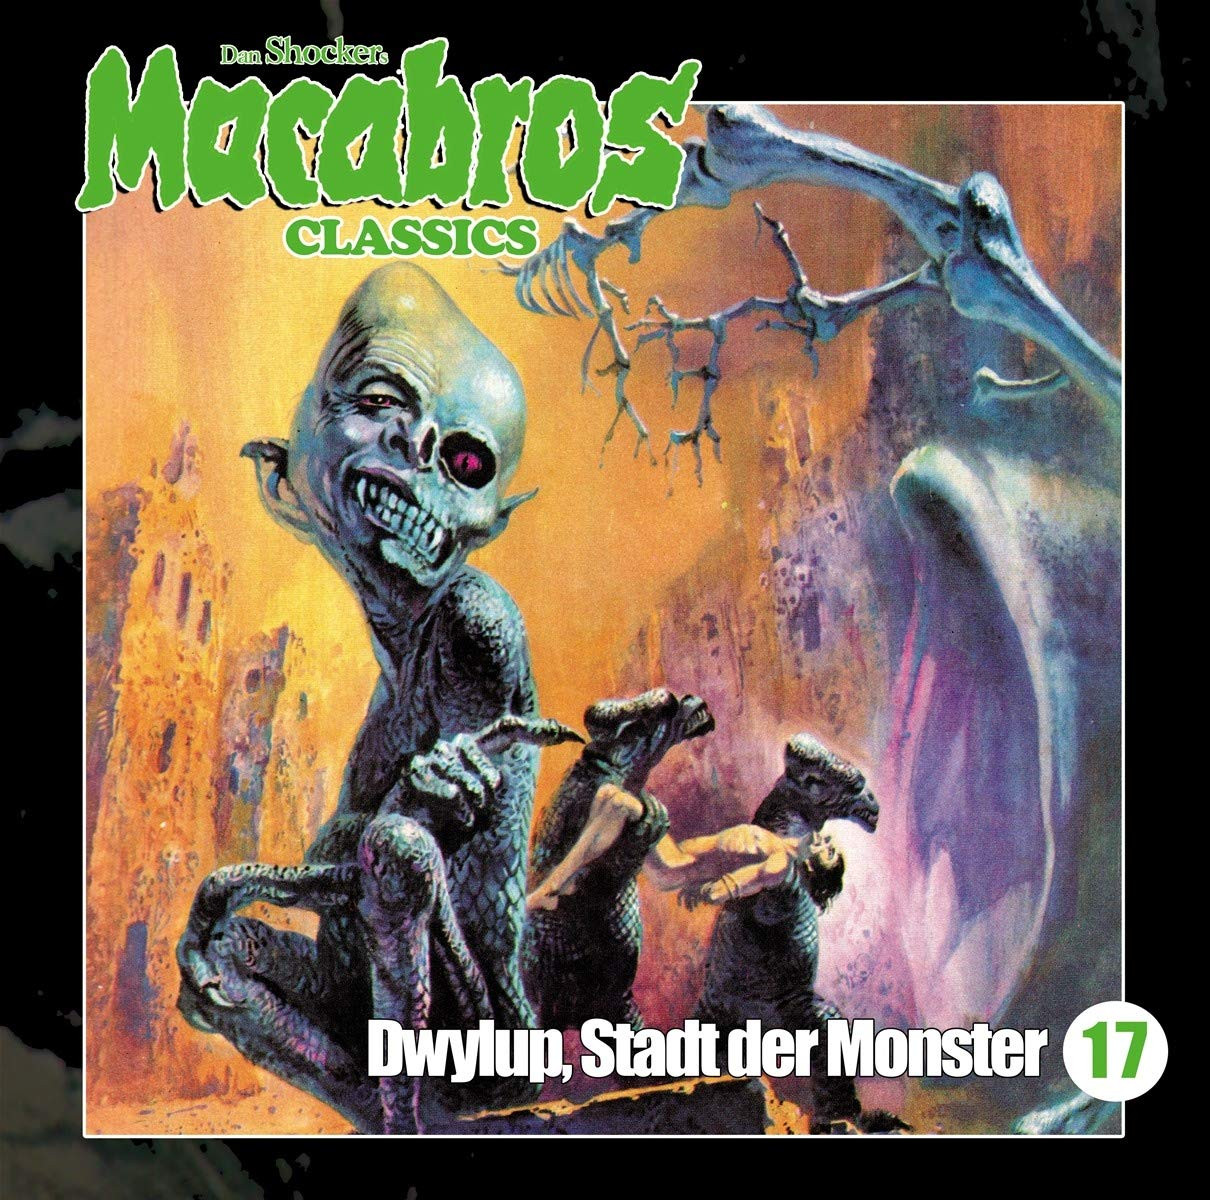 Macabros Classics - Folge 17: Dwylup, Stadt der Monster